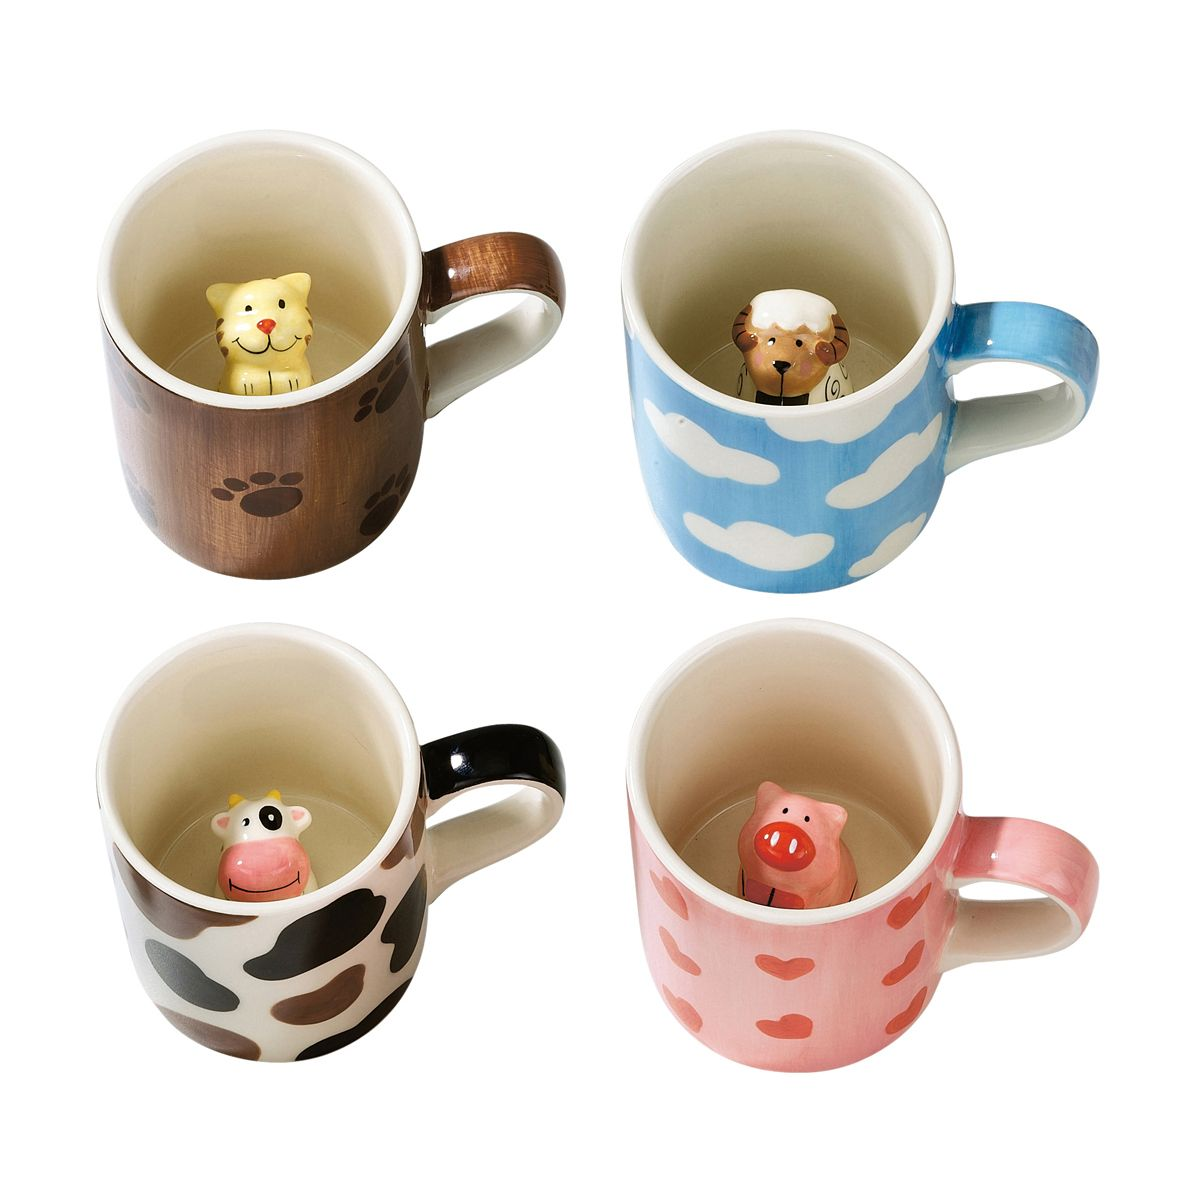 e36d3ddeca6 Adorable little children's mugs are hiding a cute ceramic animal inside  SORRY COW MUG OUT OF